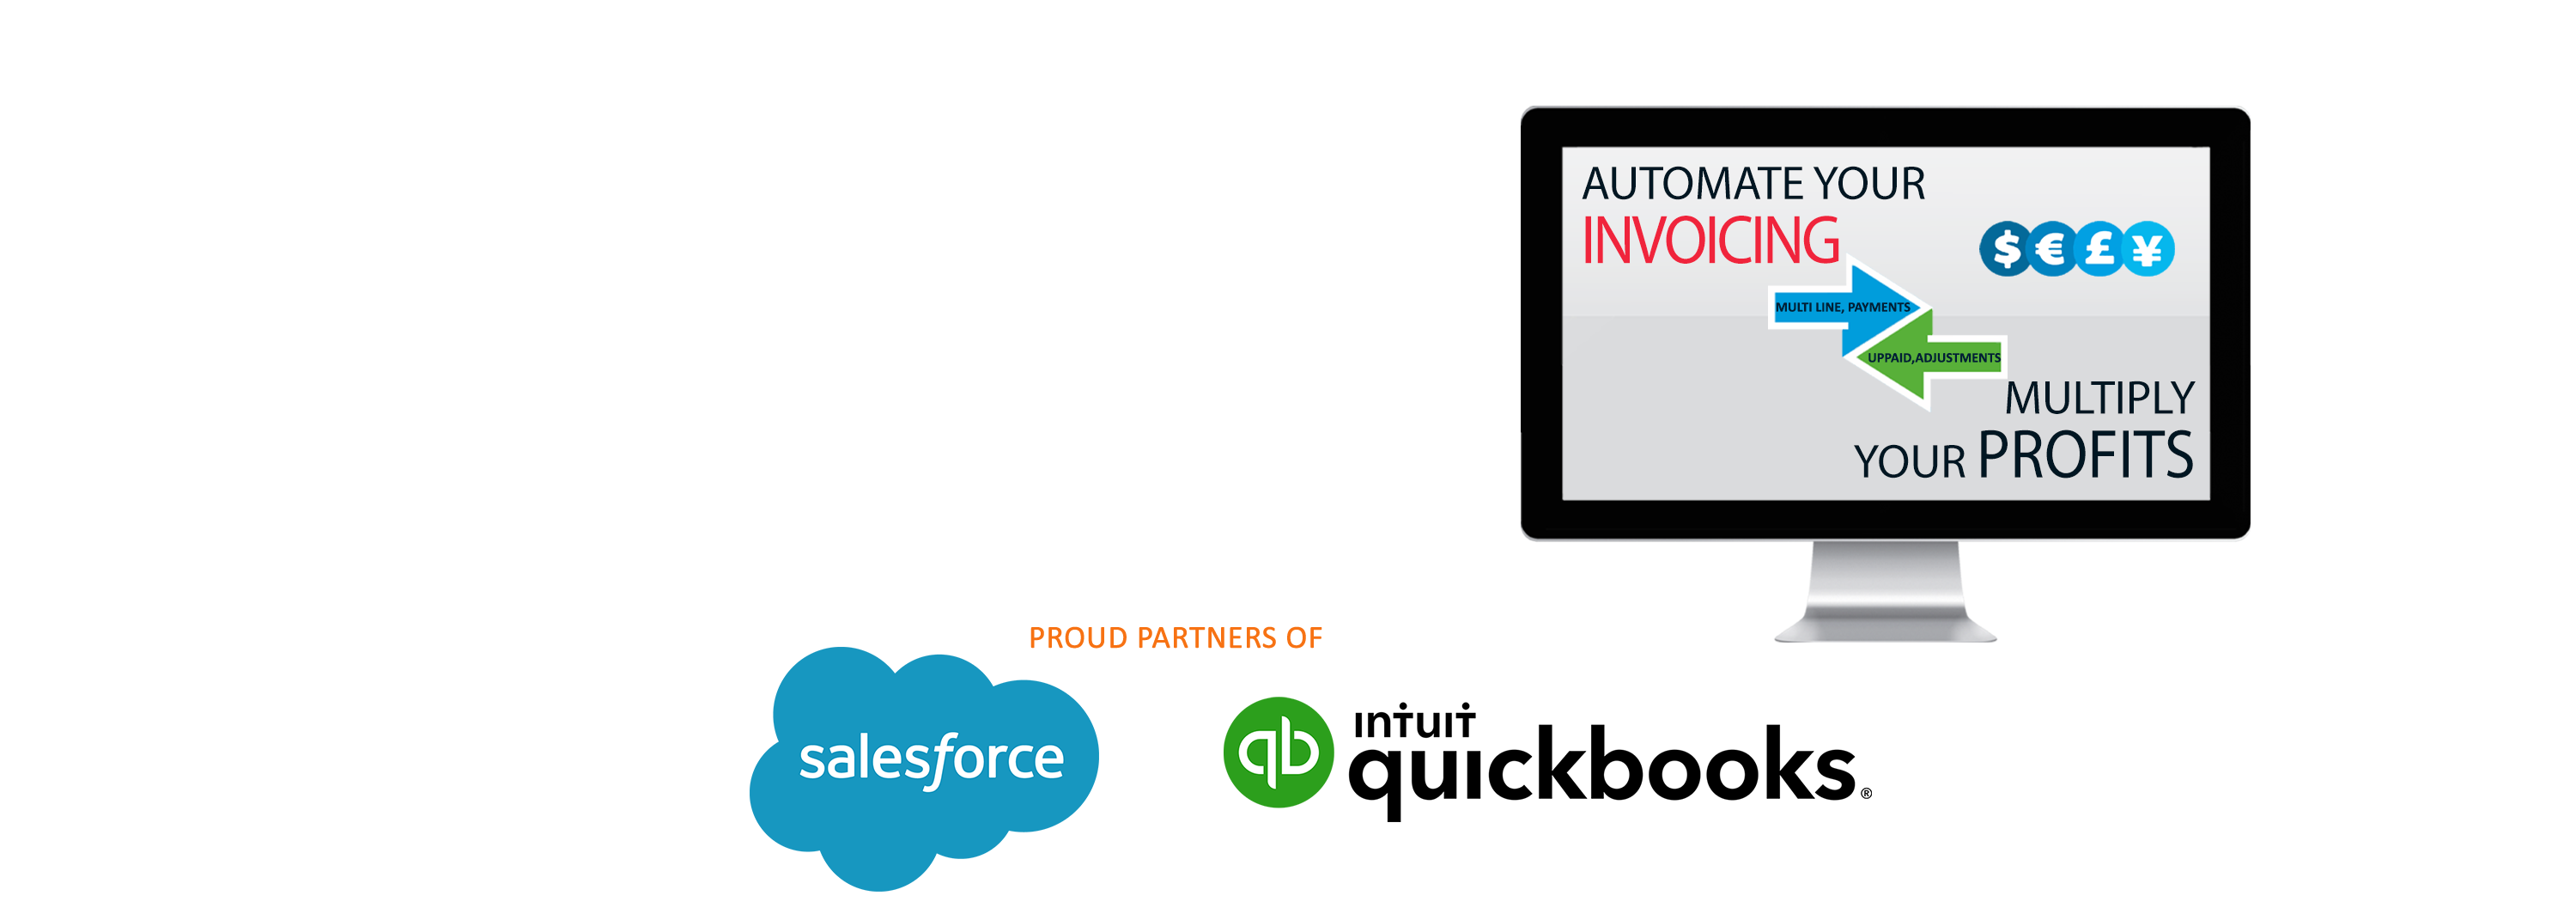 SyncQ - Salesforce QuickBooks Accounting Automation - Sync